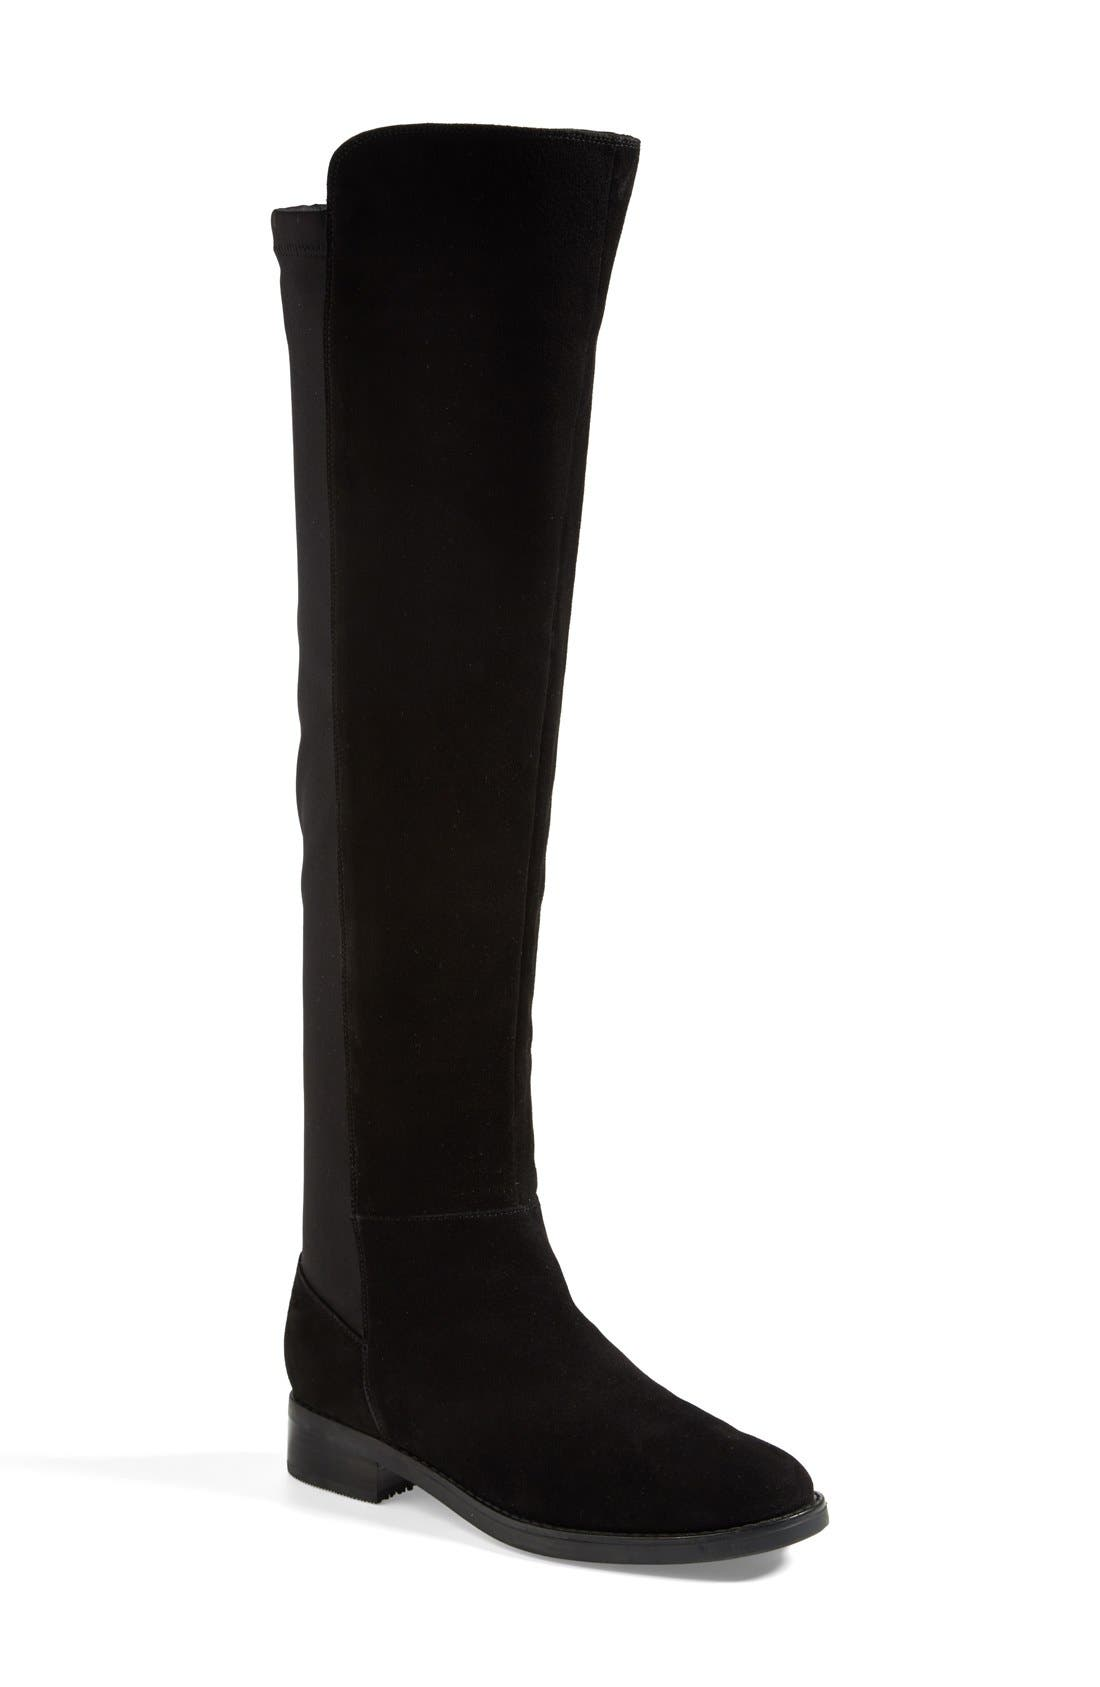 BLONDO,                             'Eden' Over the Knee Waterproof Boot,                             Main thumbnail 1, color,                             001